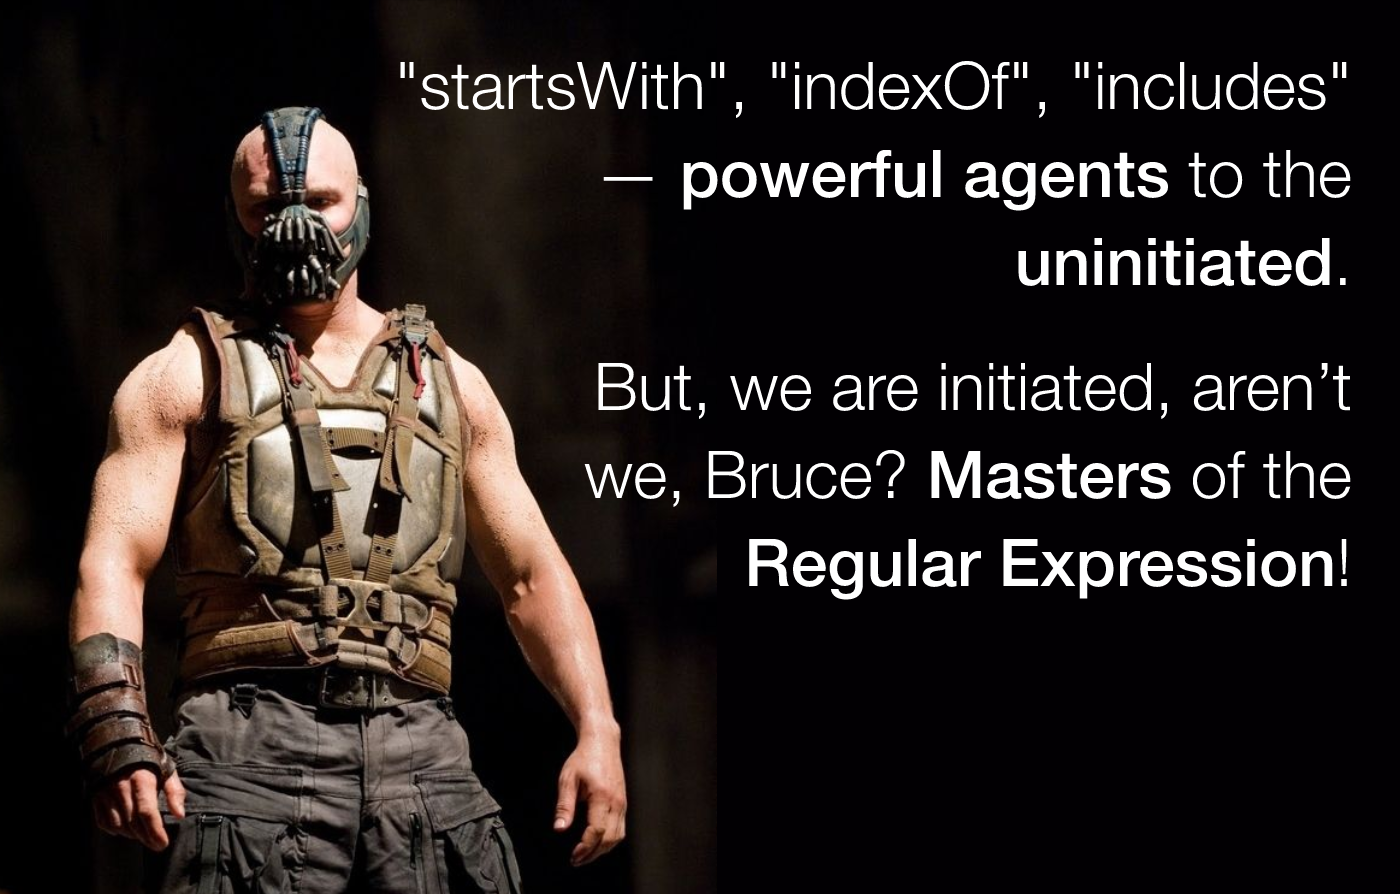 Bane: startsWith, indexOf, includes - powerful agents to the uninitiated. But, we are initiated, aren't we? Masters of RegEx pattern matching!